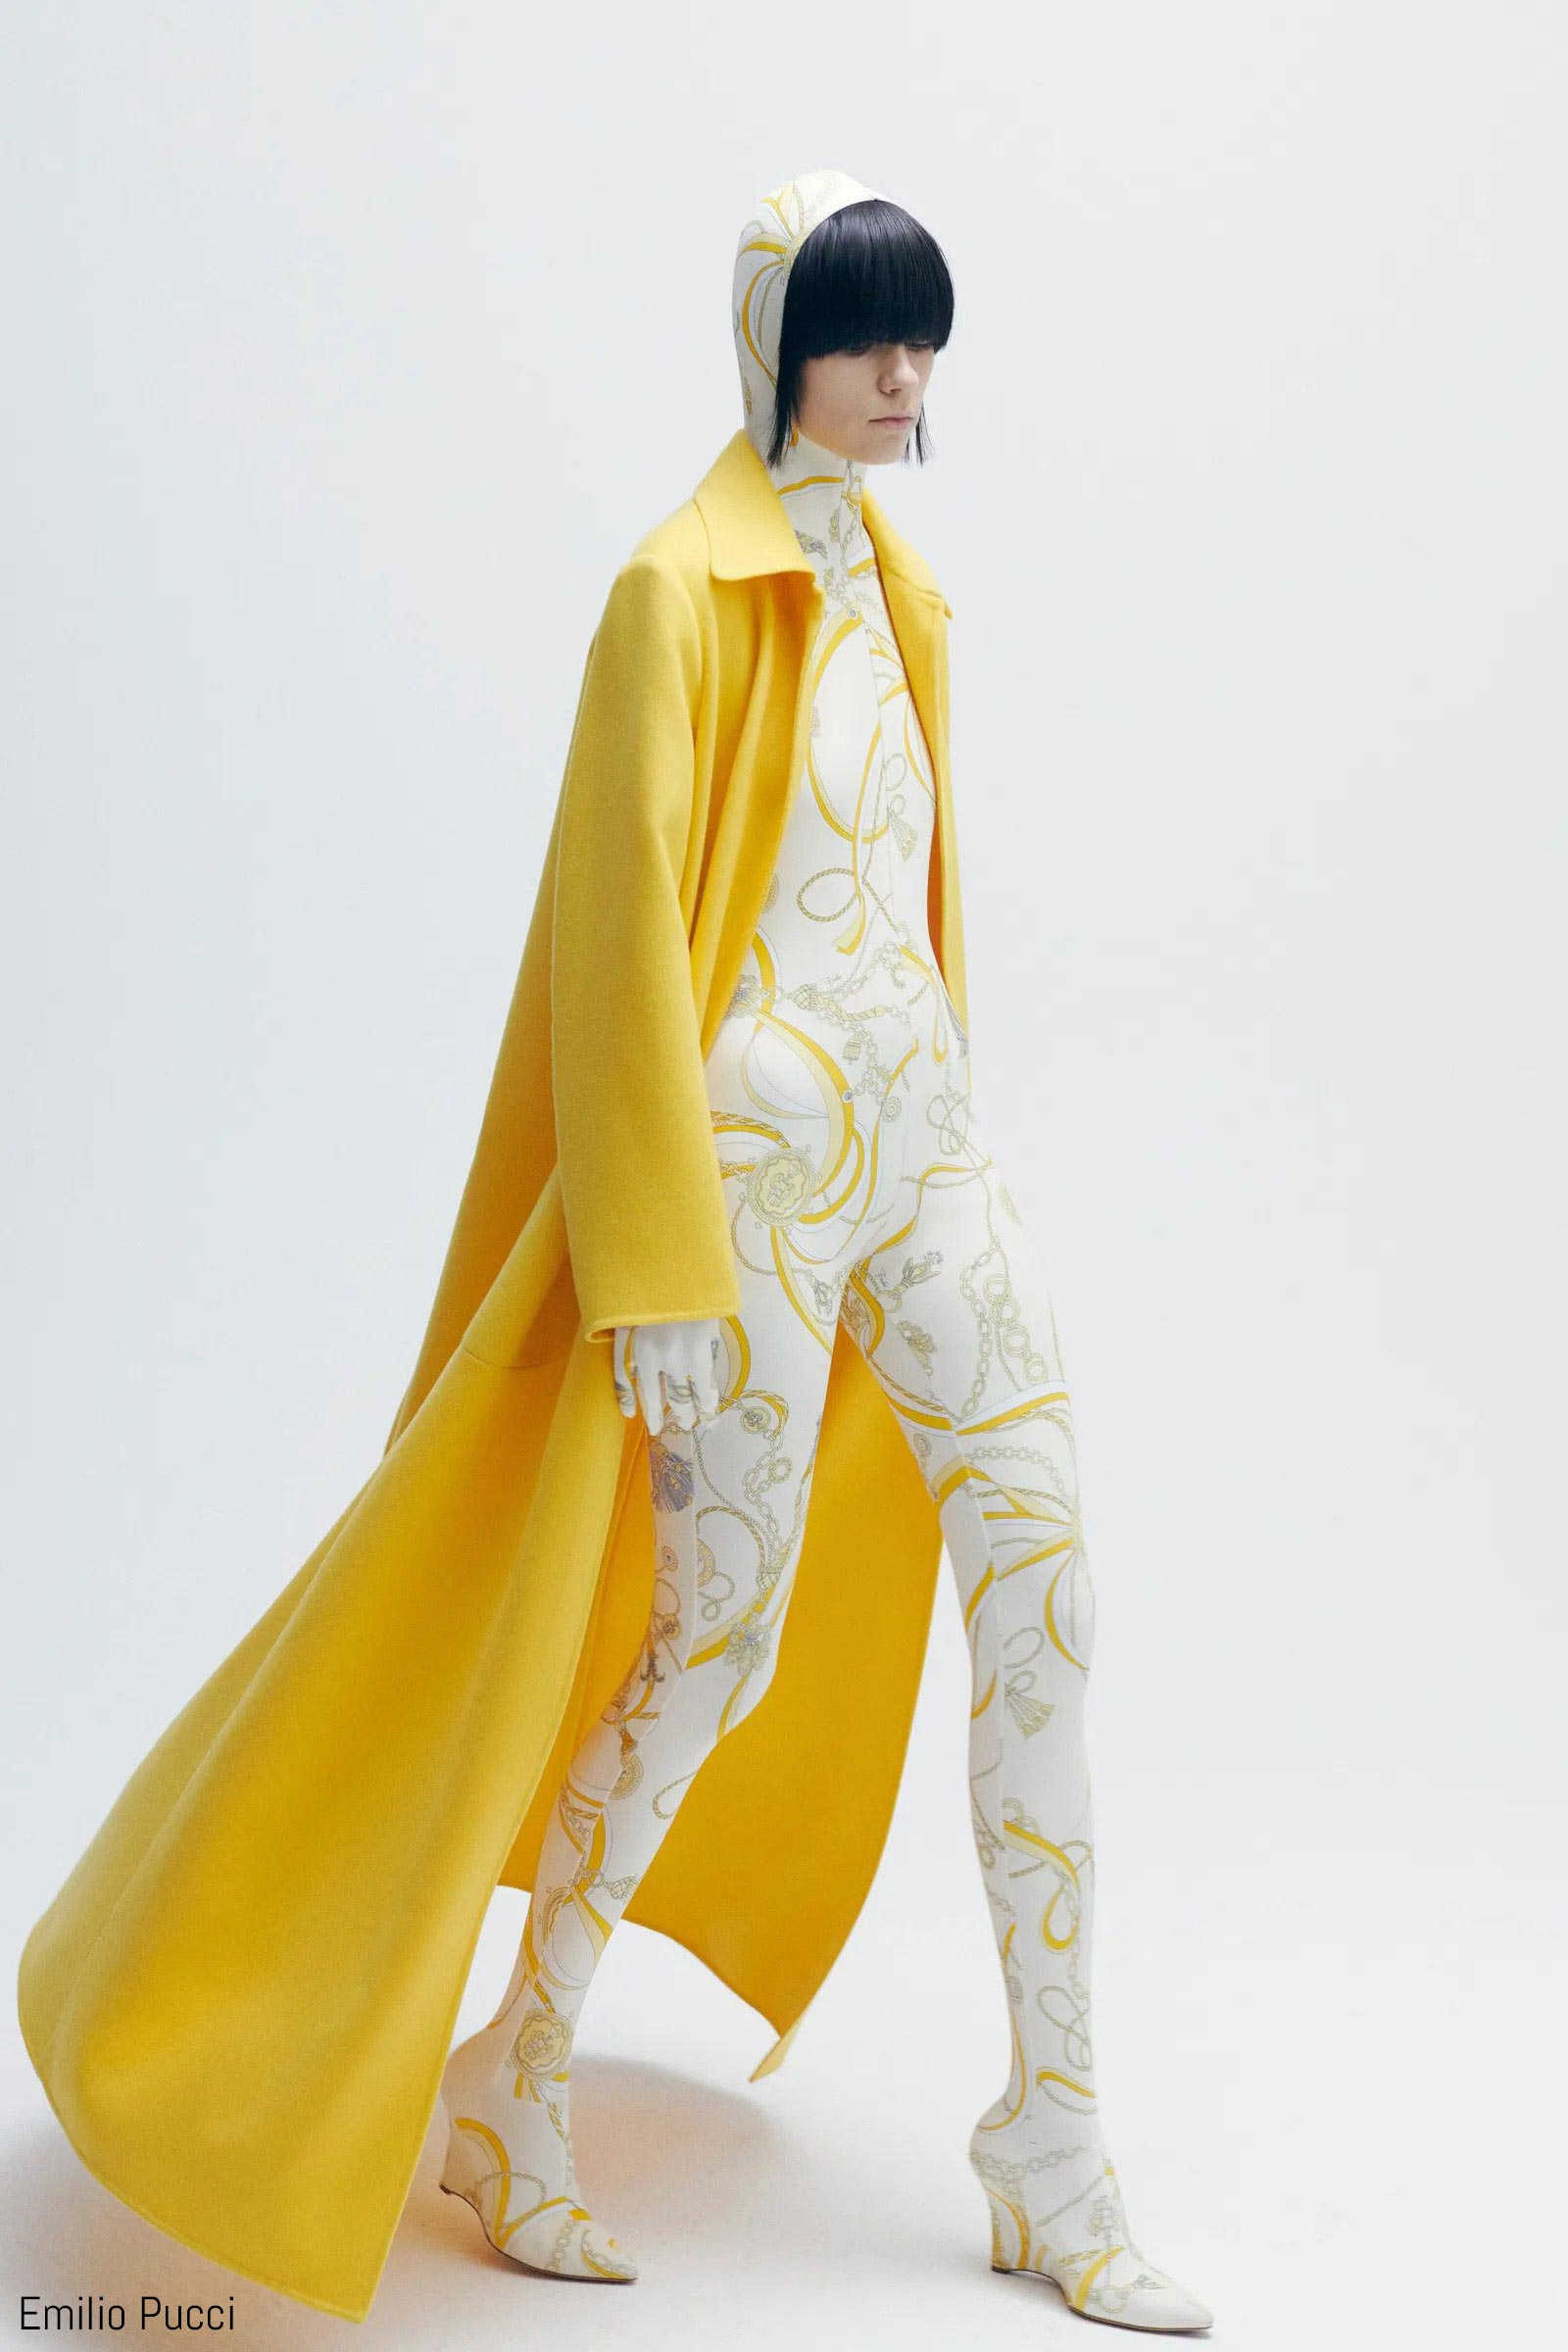 model in yellow and white emilio pucci catsuit